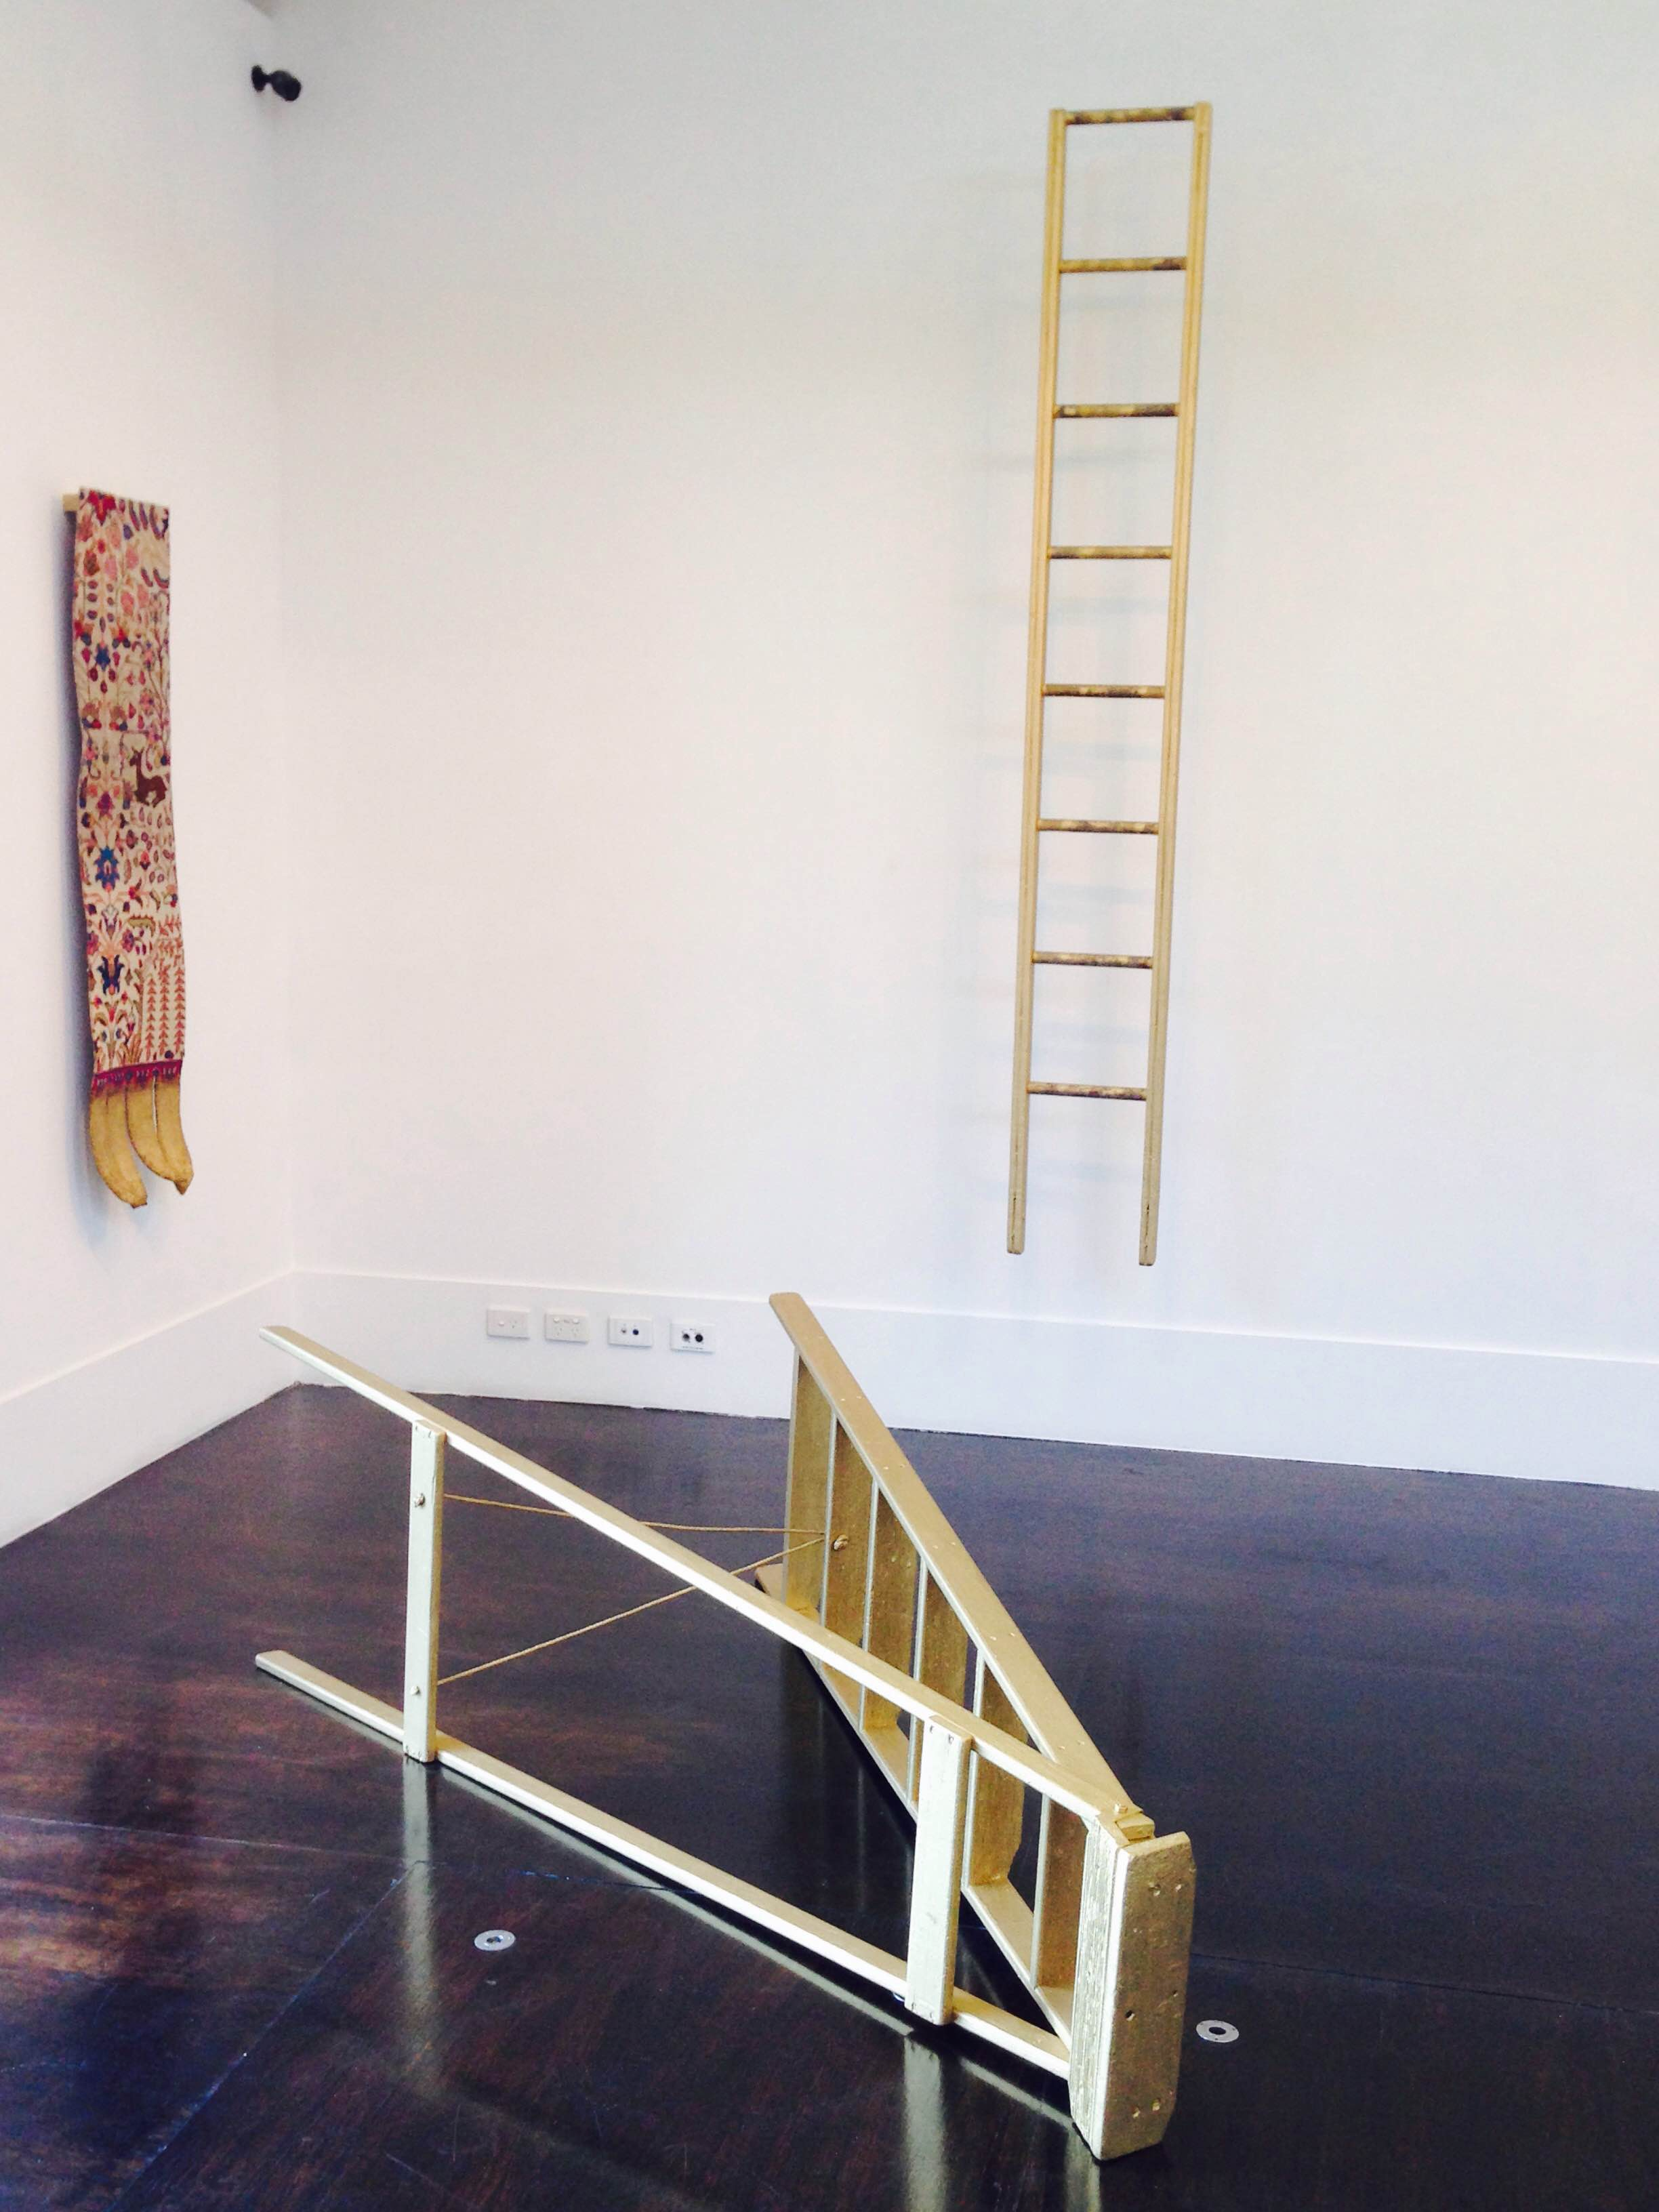 Image:  Queer Bloodlines (After Orjis) , 2015, timber ladders, altered Persian carpet, gold acrylic, rose water, dimensions variable.